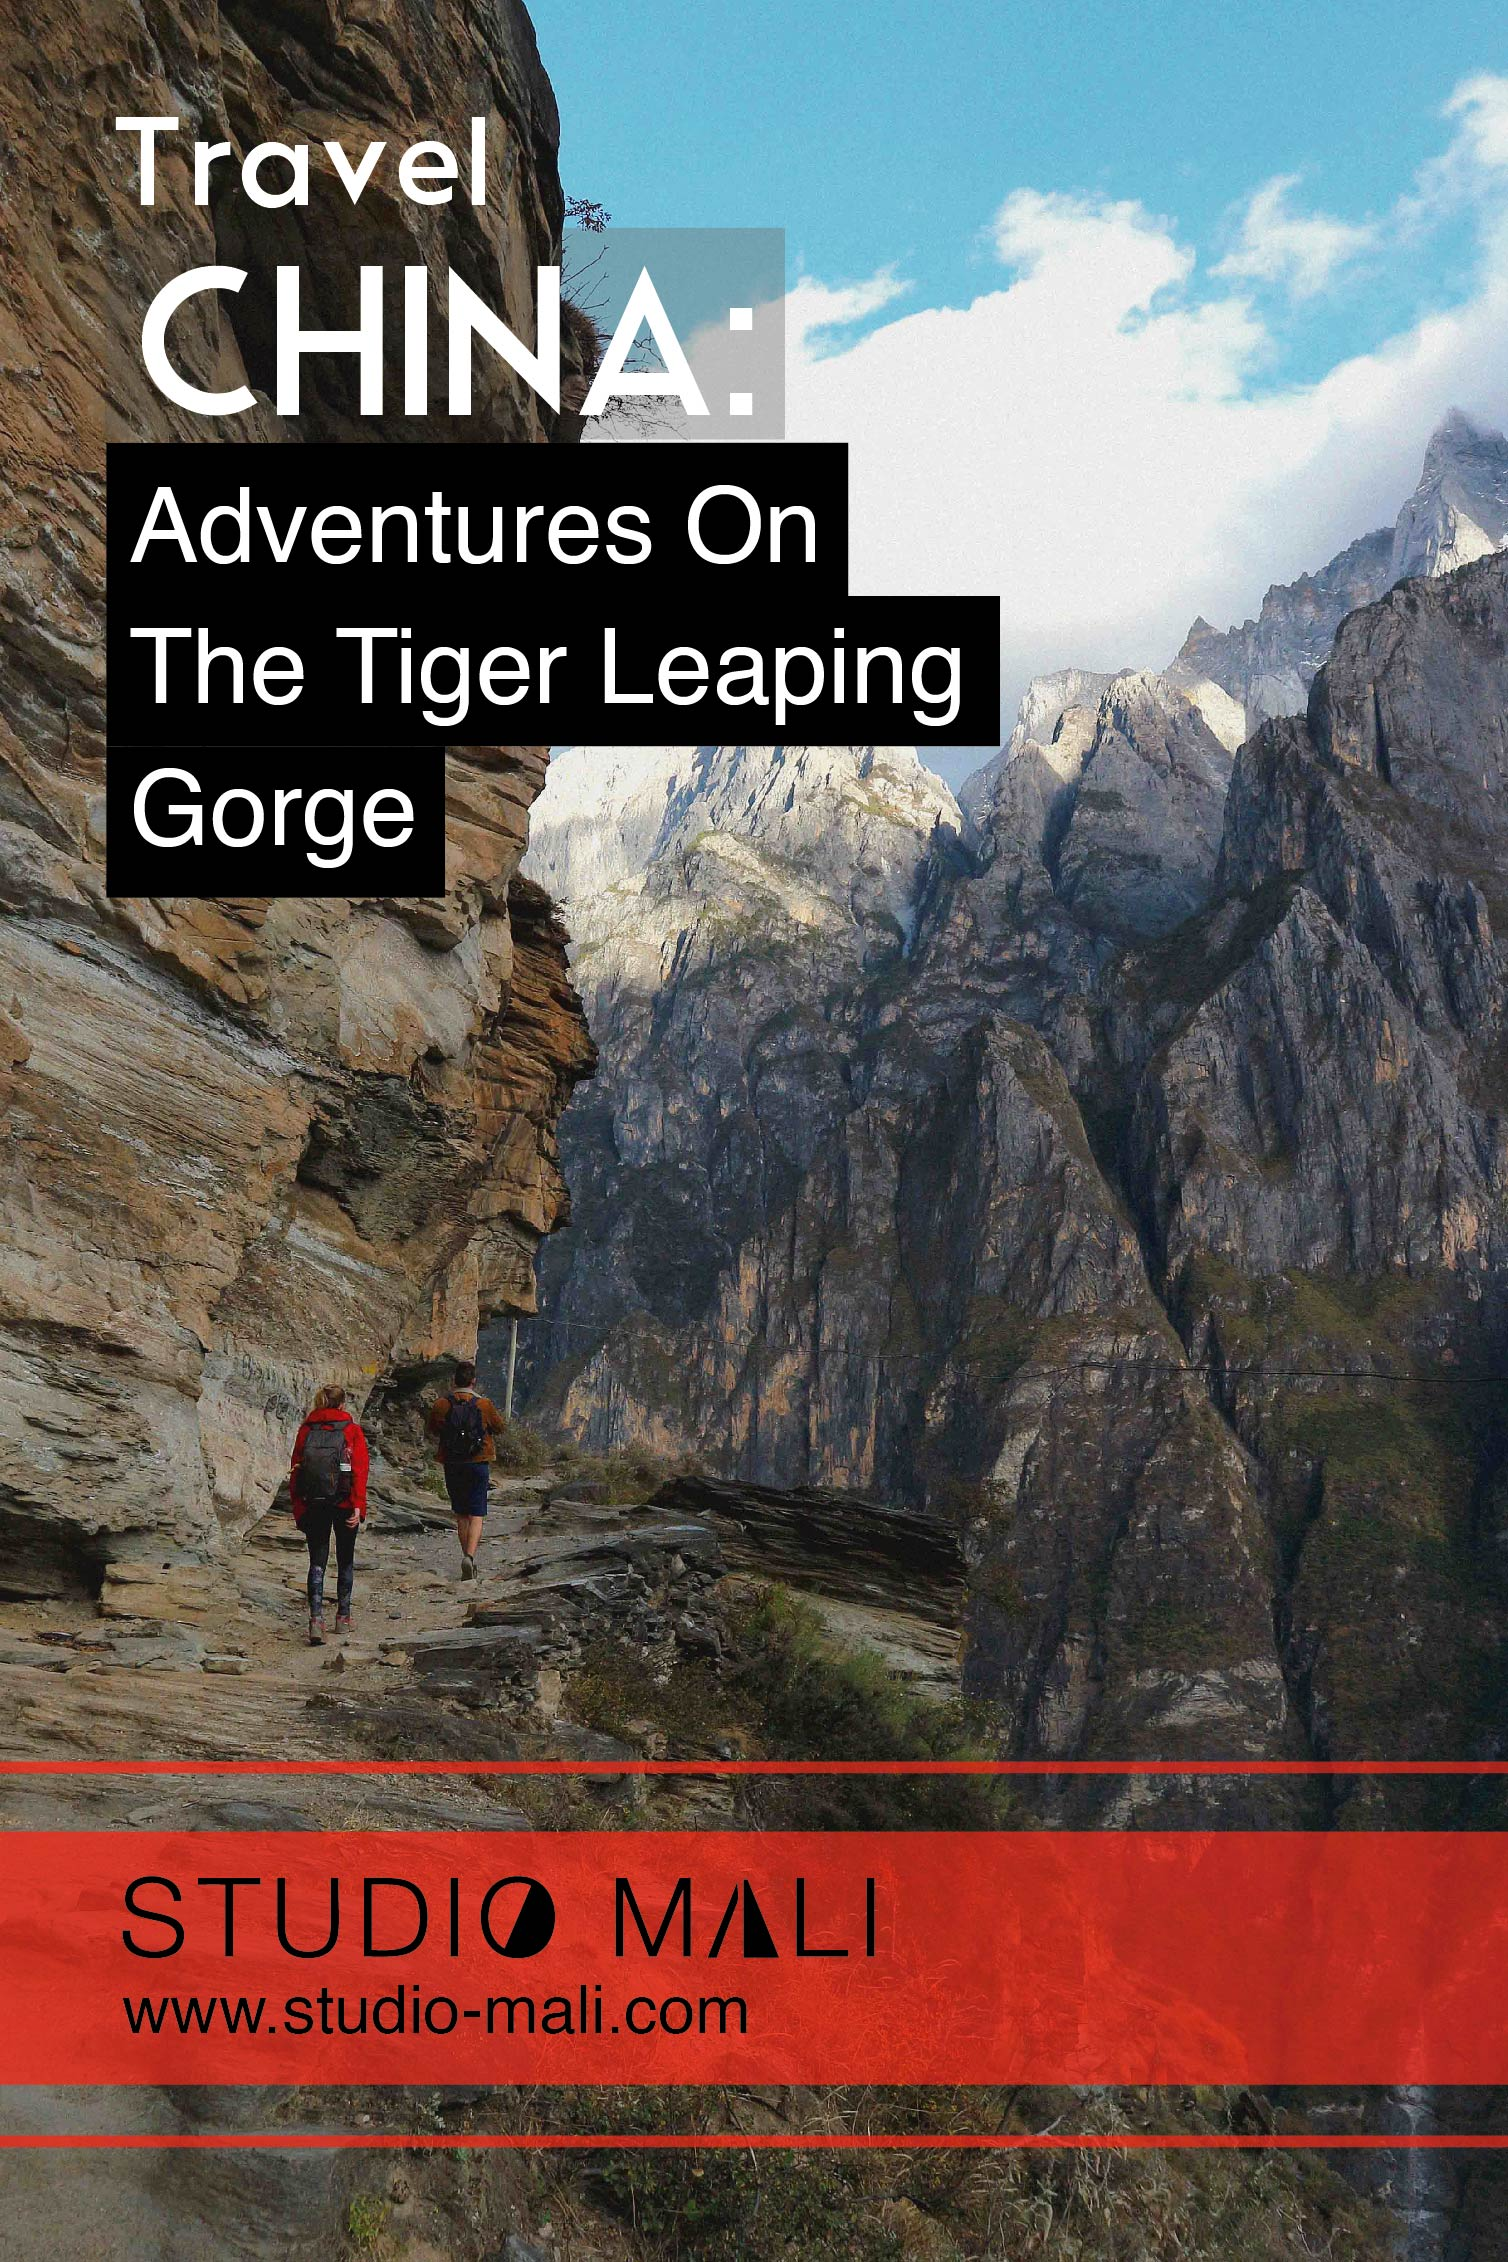 China - Adventures On The Tiger Leaping Gorge, by Studio Mali